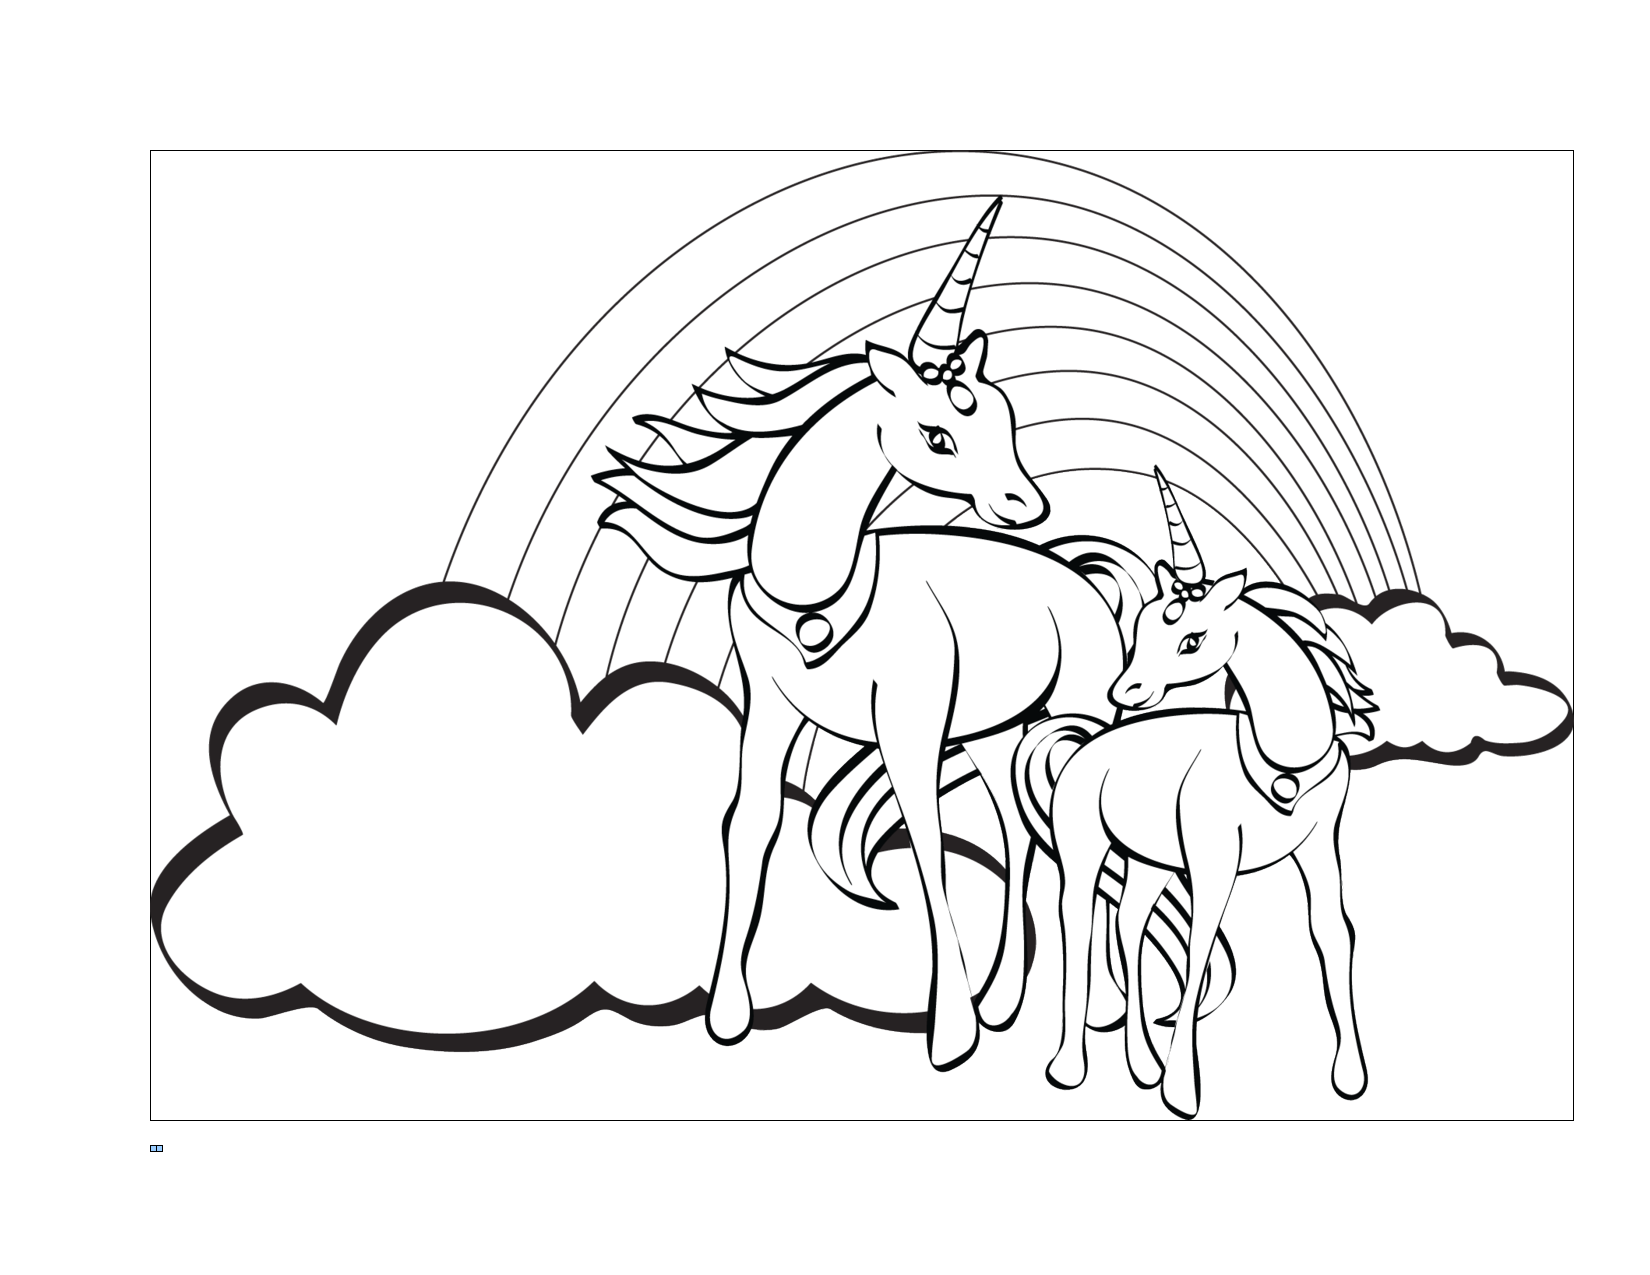 Unicorn Fairy Tales Coloring Pages Printable Art Sheets For Download For Free Horse Pegasus Unicorn Coloring Pages Mandala Coloring Pages Animal Coloring Pages